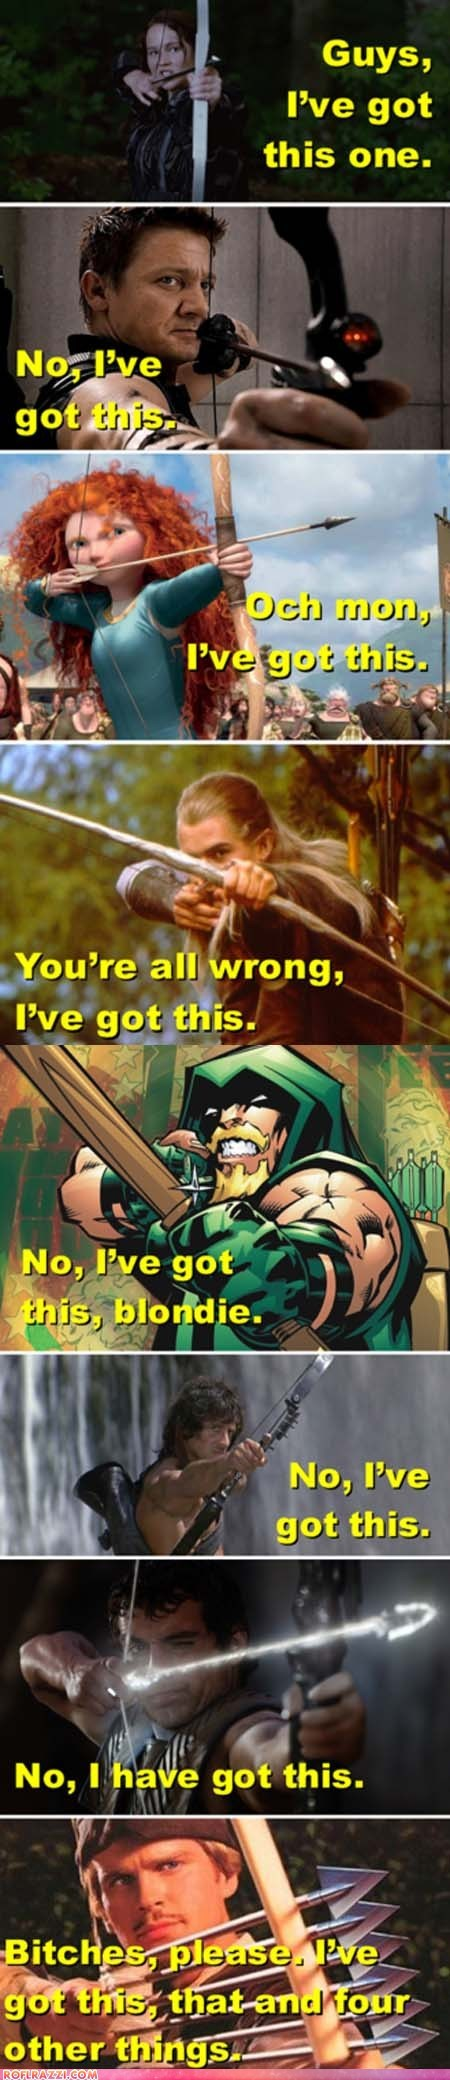 best of the week brave comic funny green arrow Lord of the Rings Movie rambo robin-hood-men-in-tights The Avengers hunger games - 6431314176